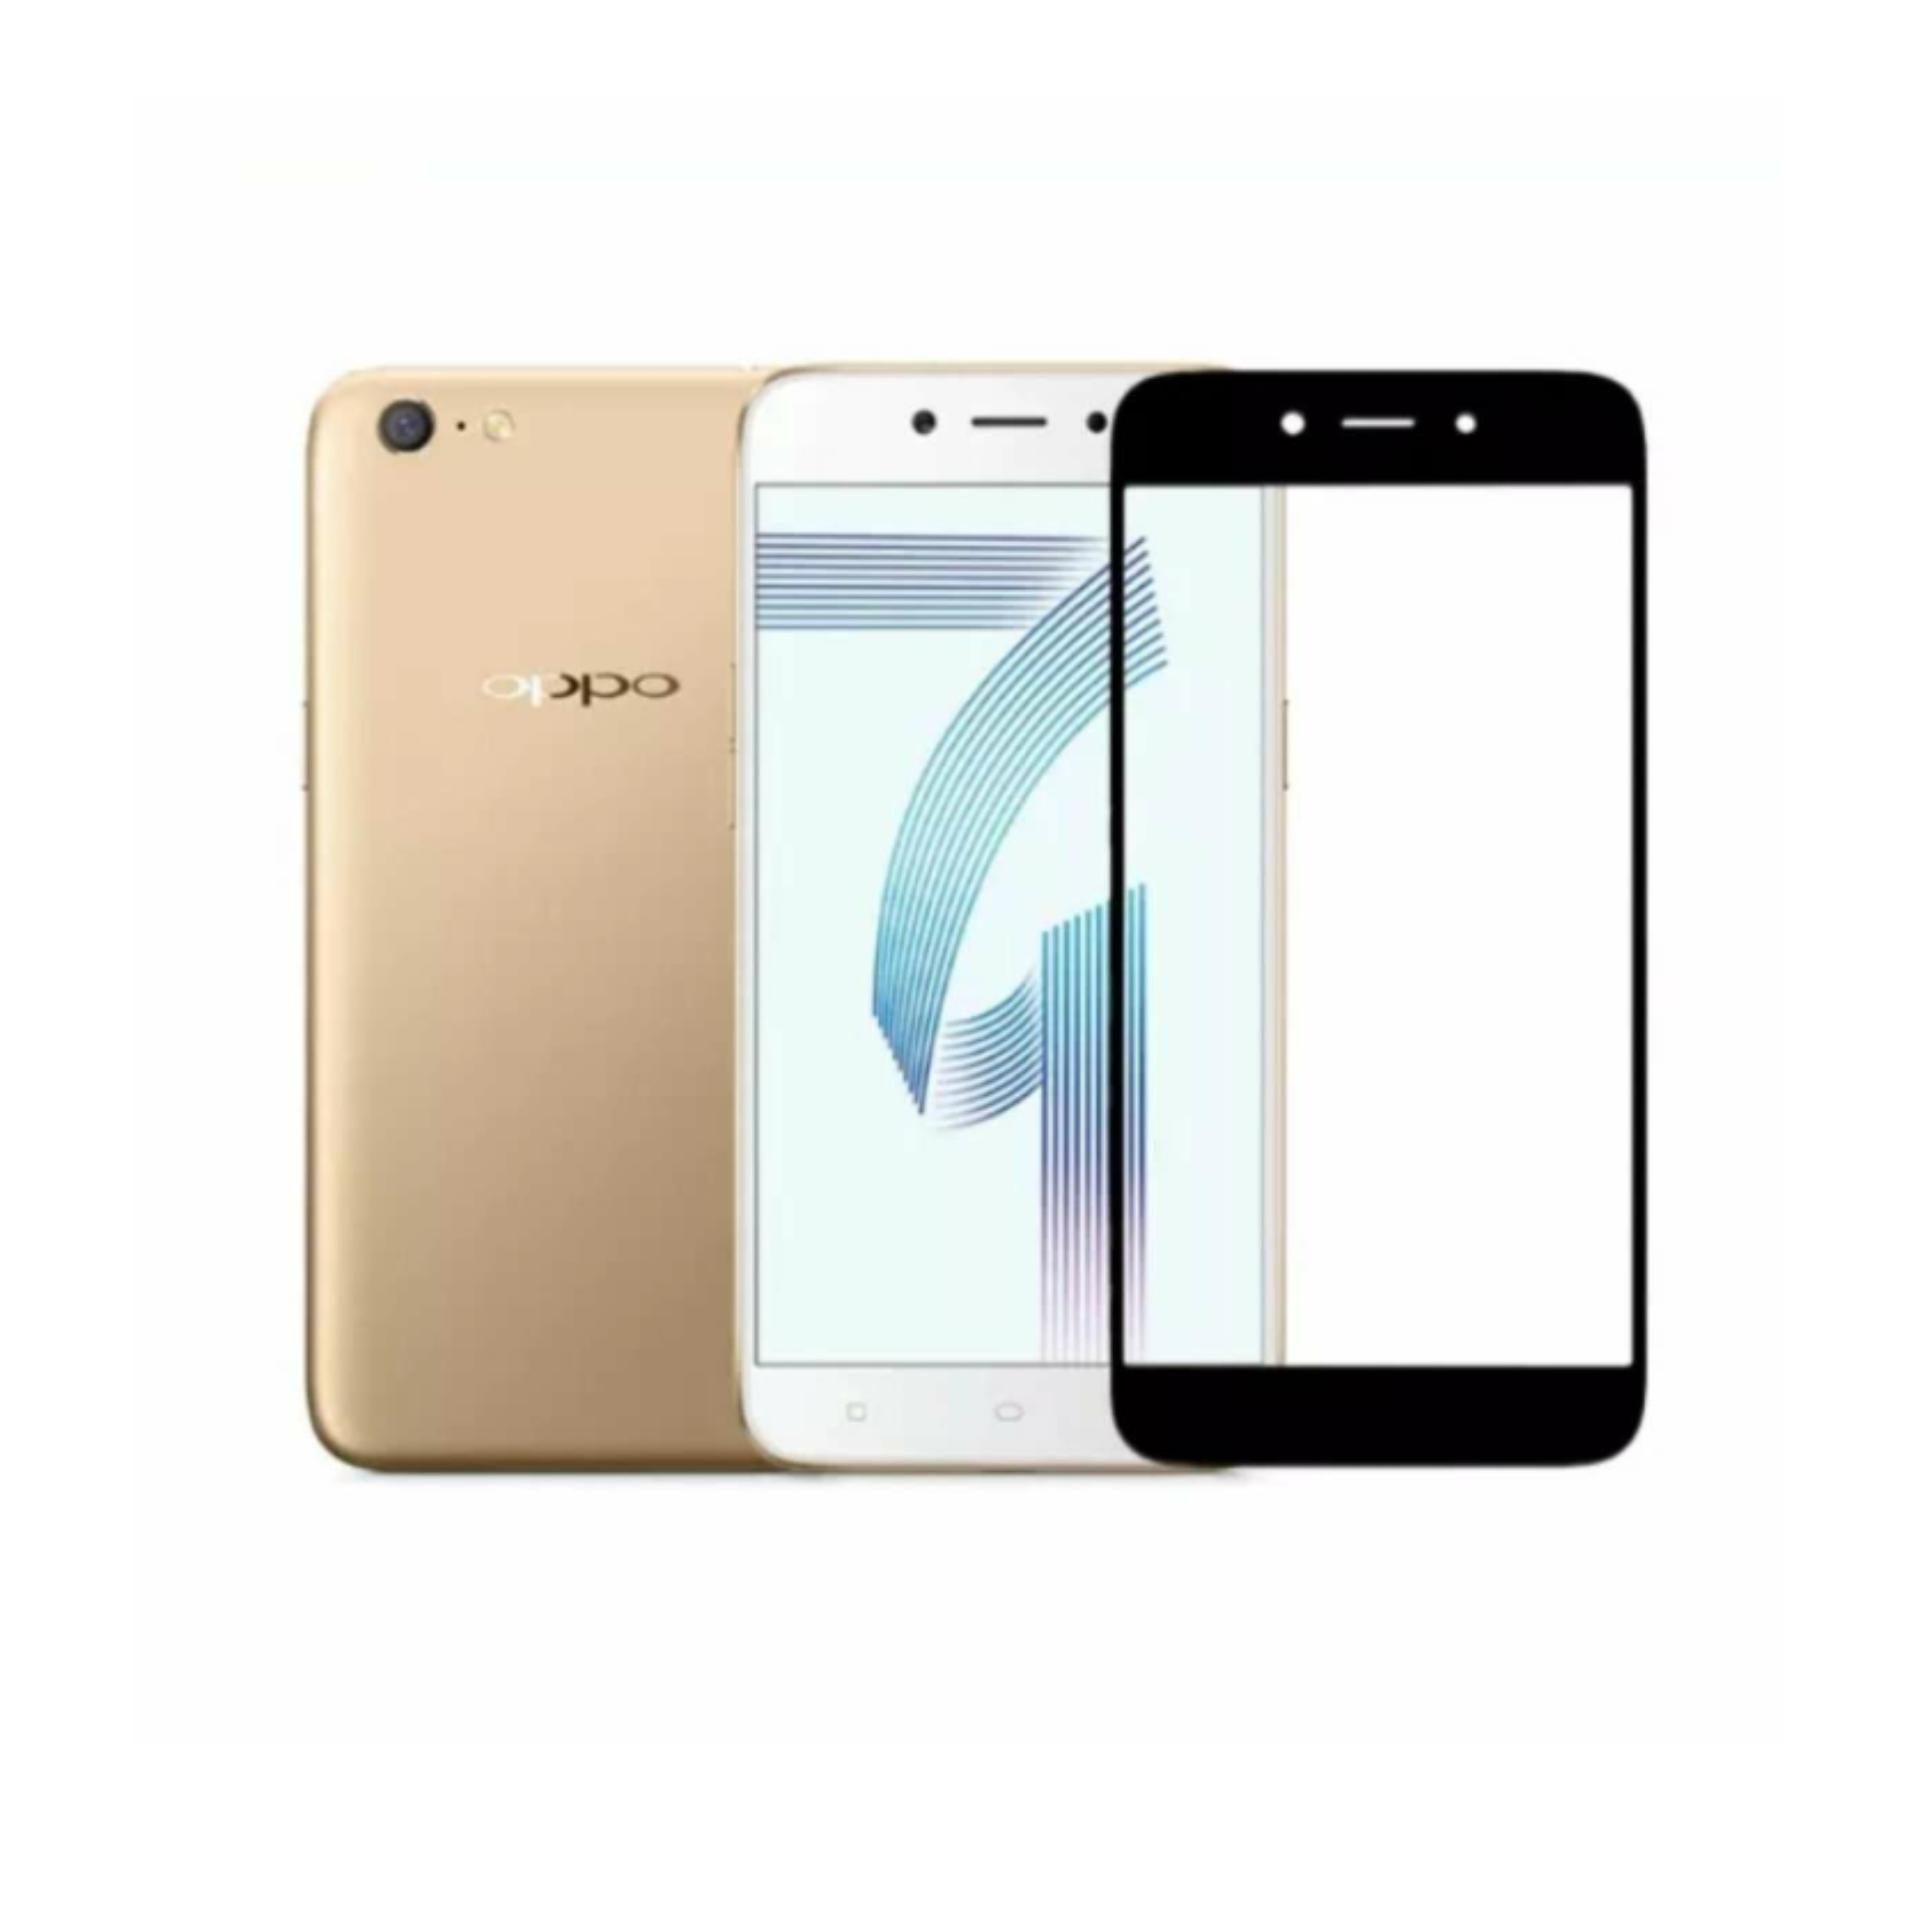 ... Protector Putih Source · Tempered Glass 9Star For Oppo A71 Full Screen List Warna Hitam